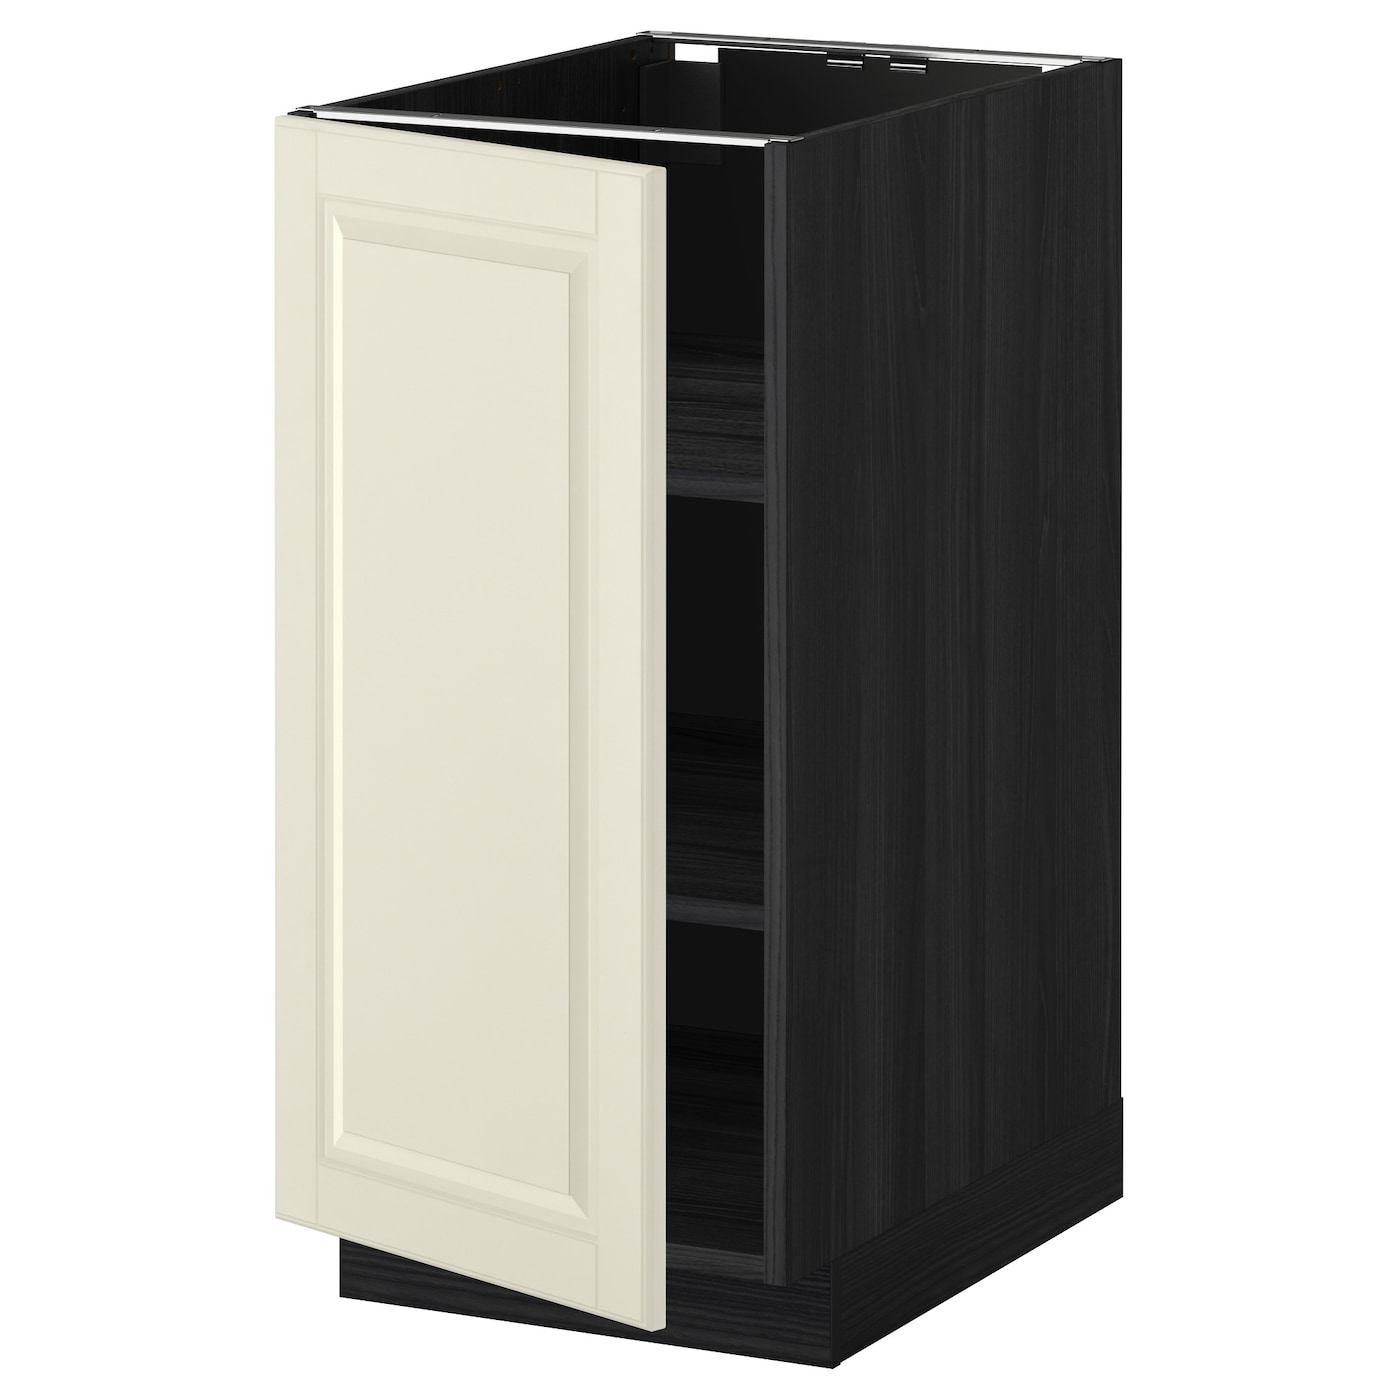 Metod Base Cabinet With Shelves Black Bodbyn Off White 40x60 Cm Ikea